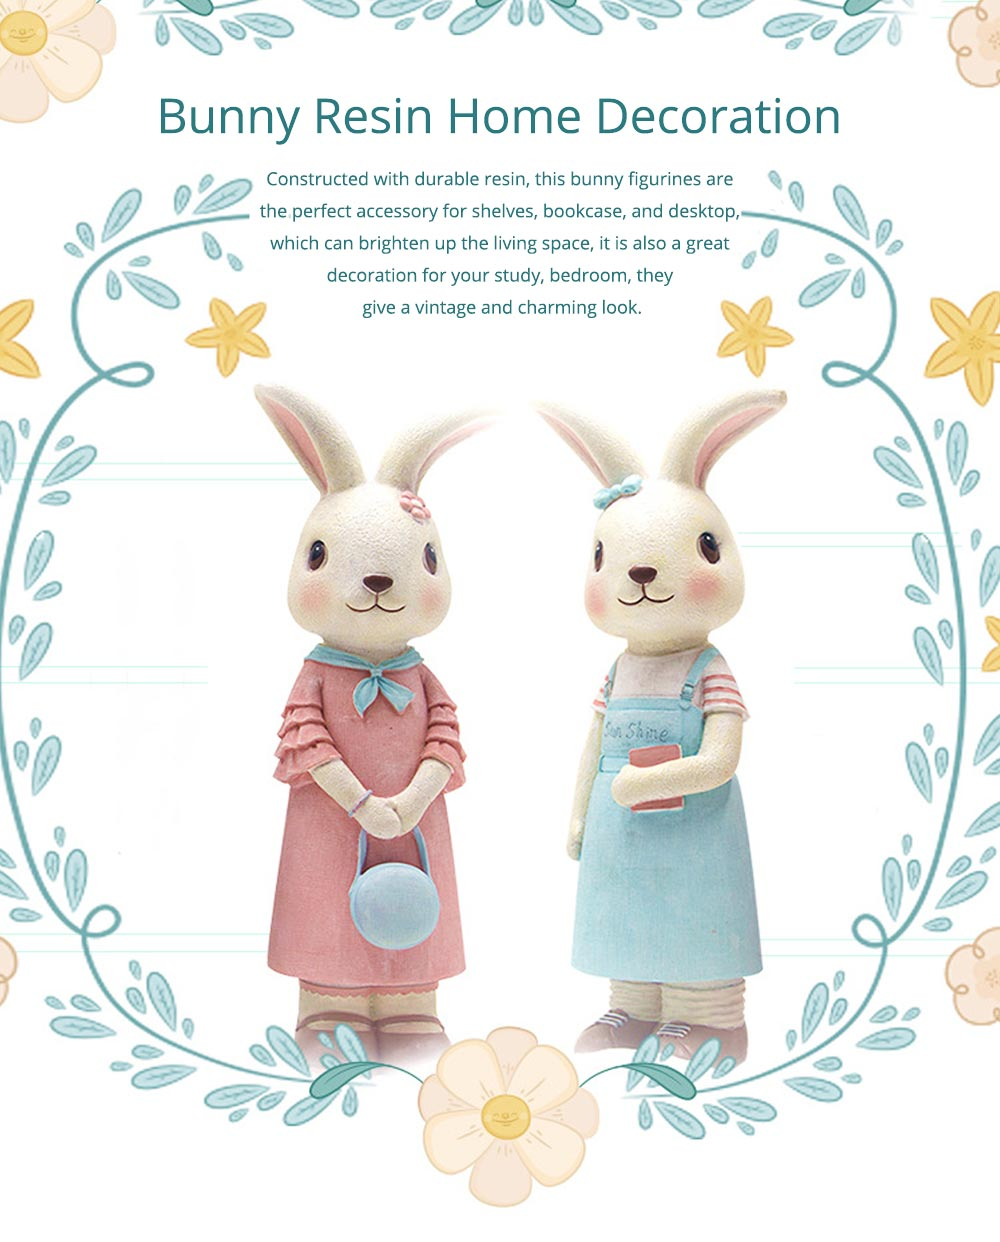 Rabbit Home Decoration Bunny Resin Figurines, Bunny Bosom Friend Hare Decorations for Home and Garden Ornaments 0